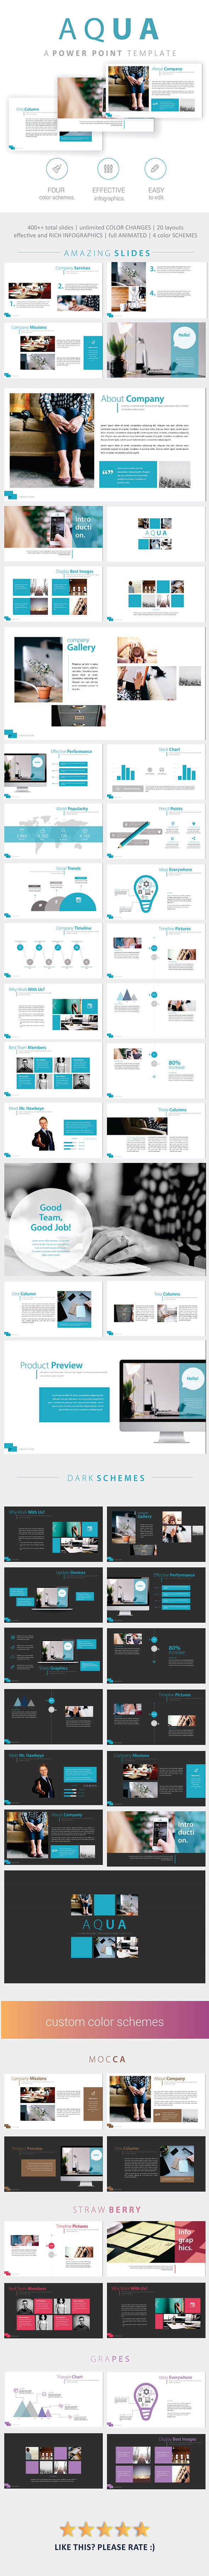 Aqua PowerPoint Template - Business PowerPoint Templates